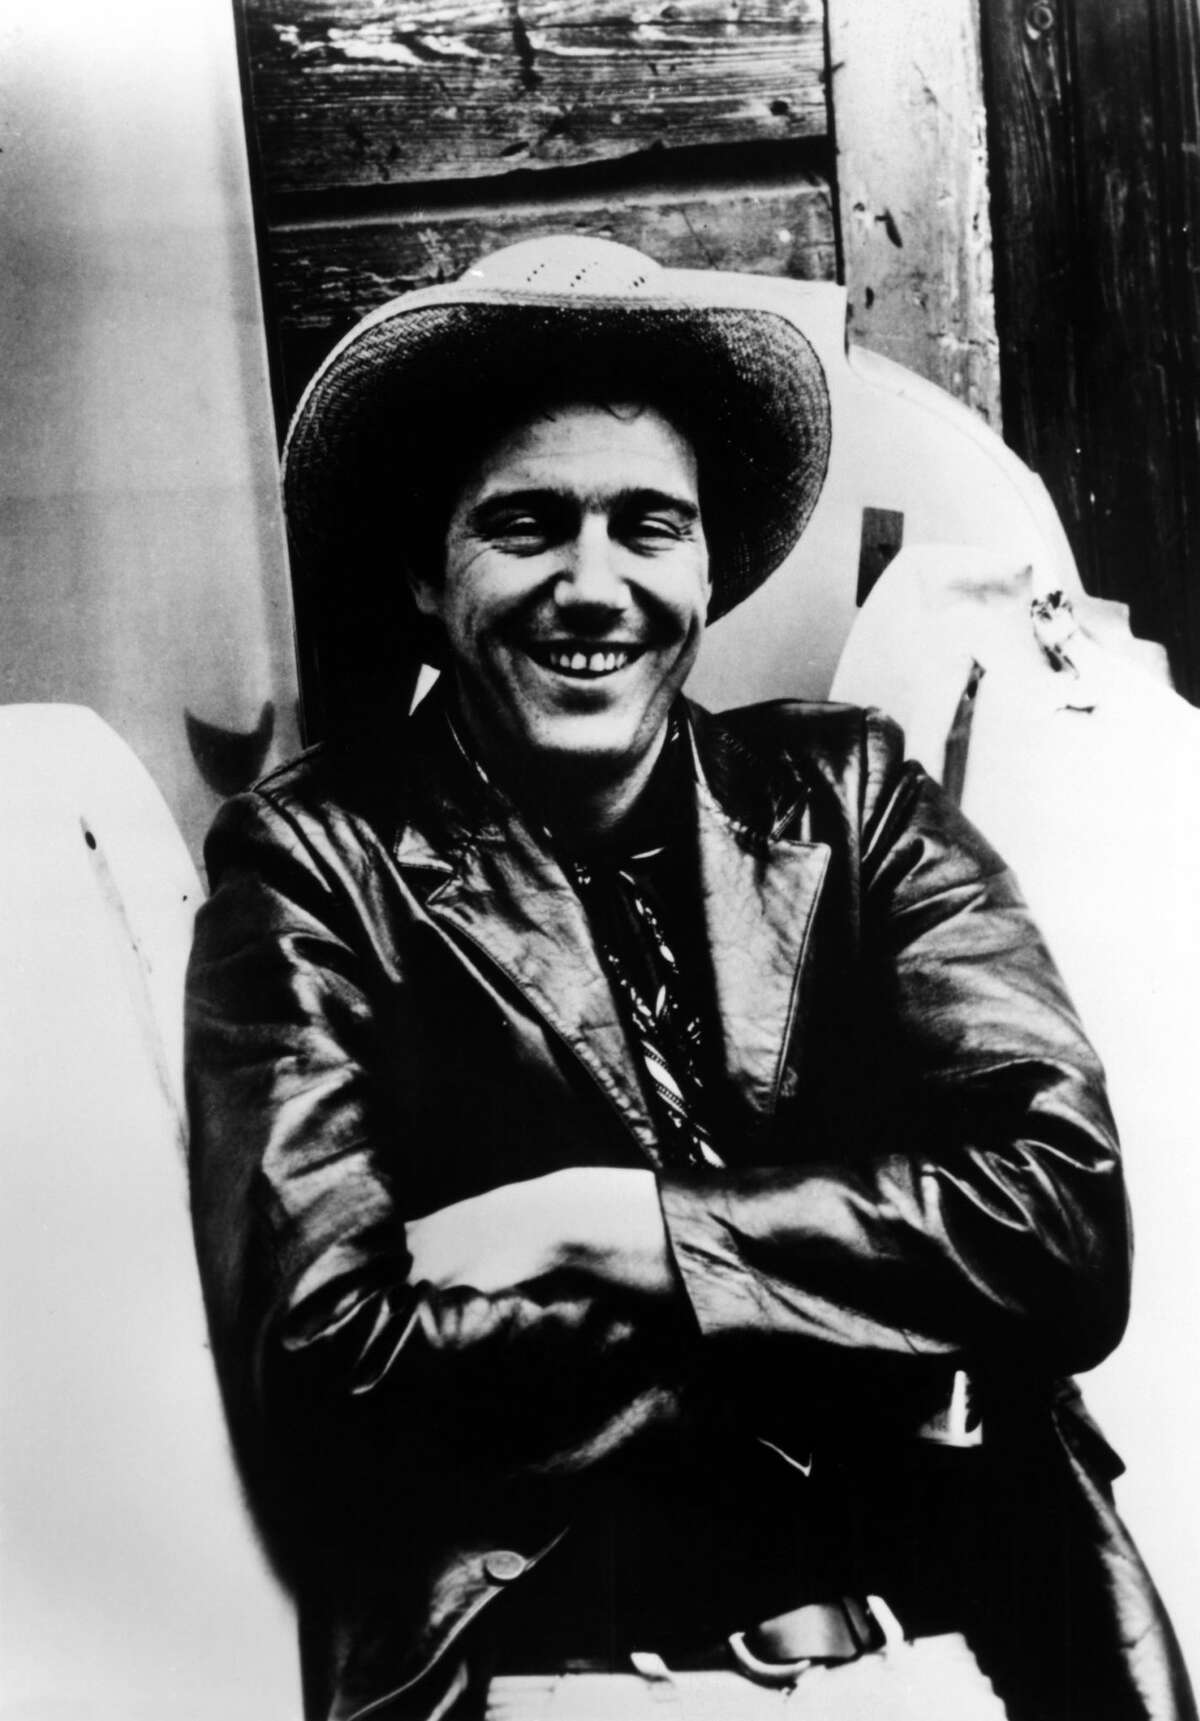 Jerry Jeff Walker was best known for writing 'Mr. Bojangles.